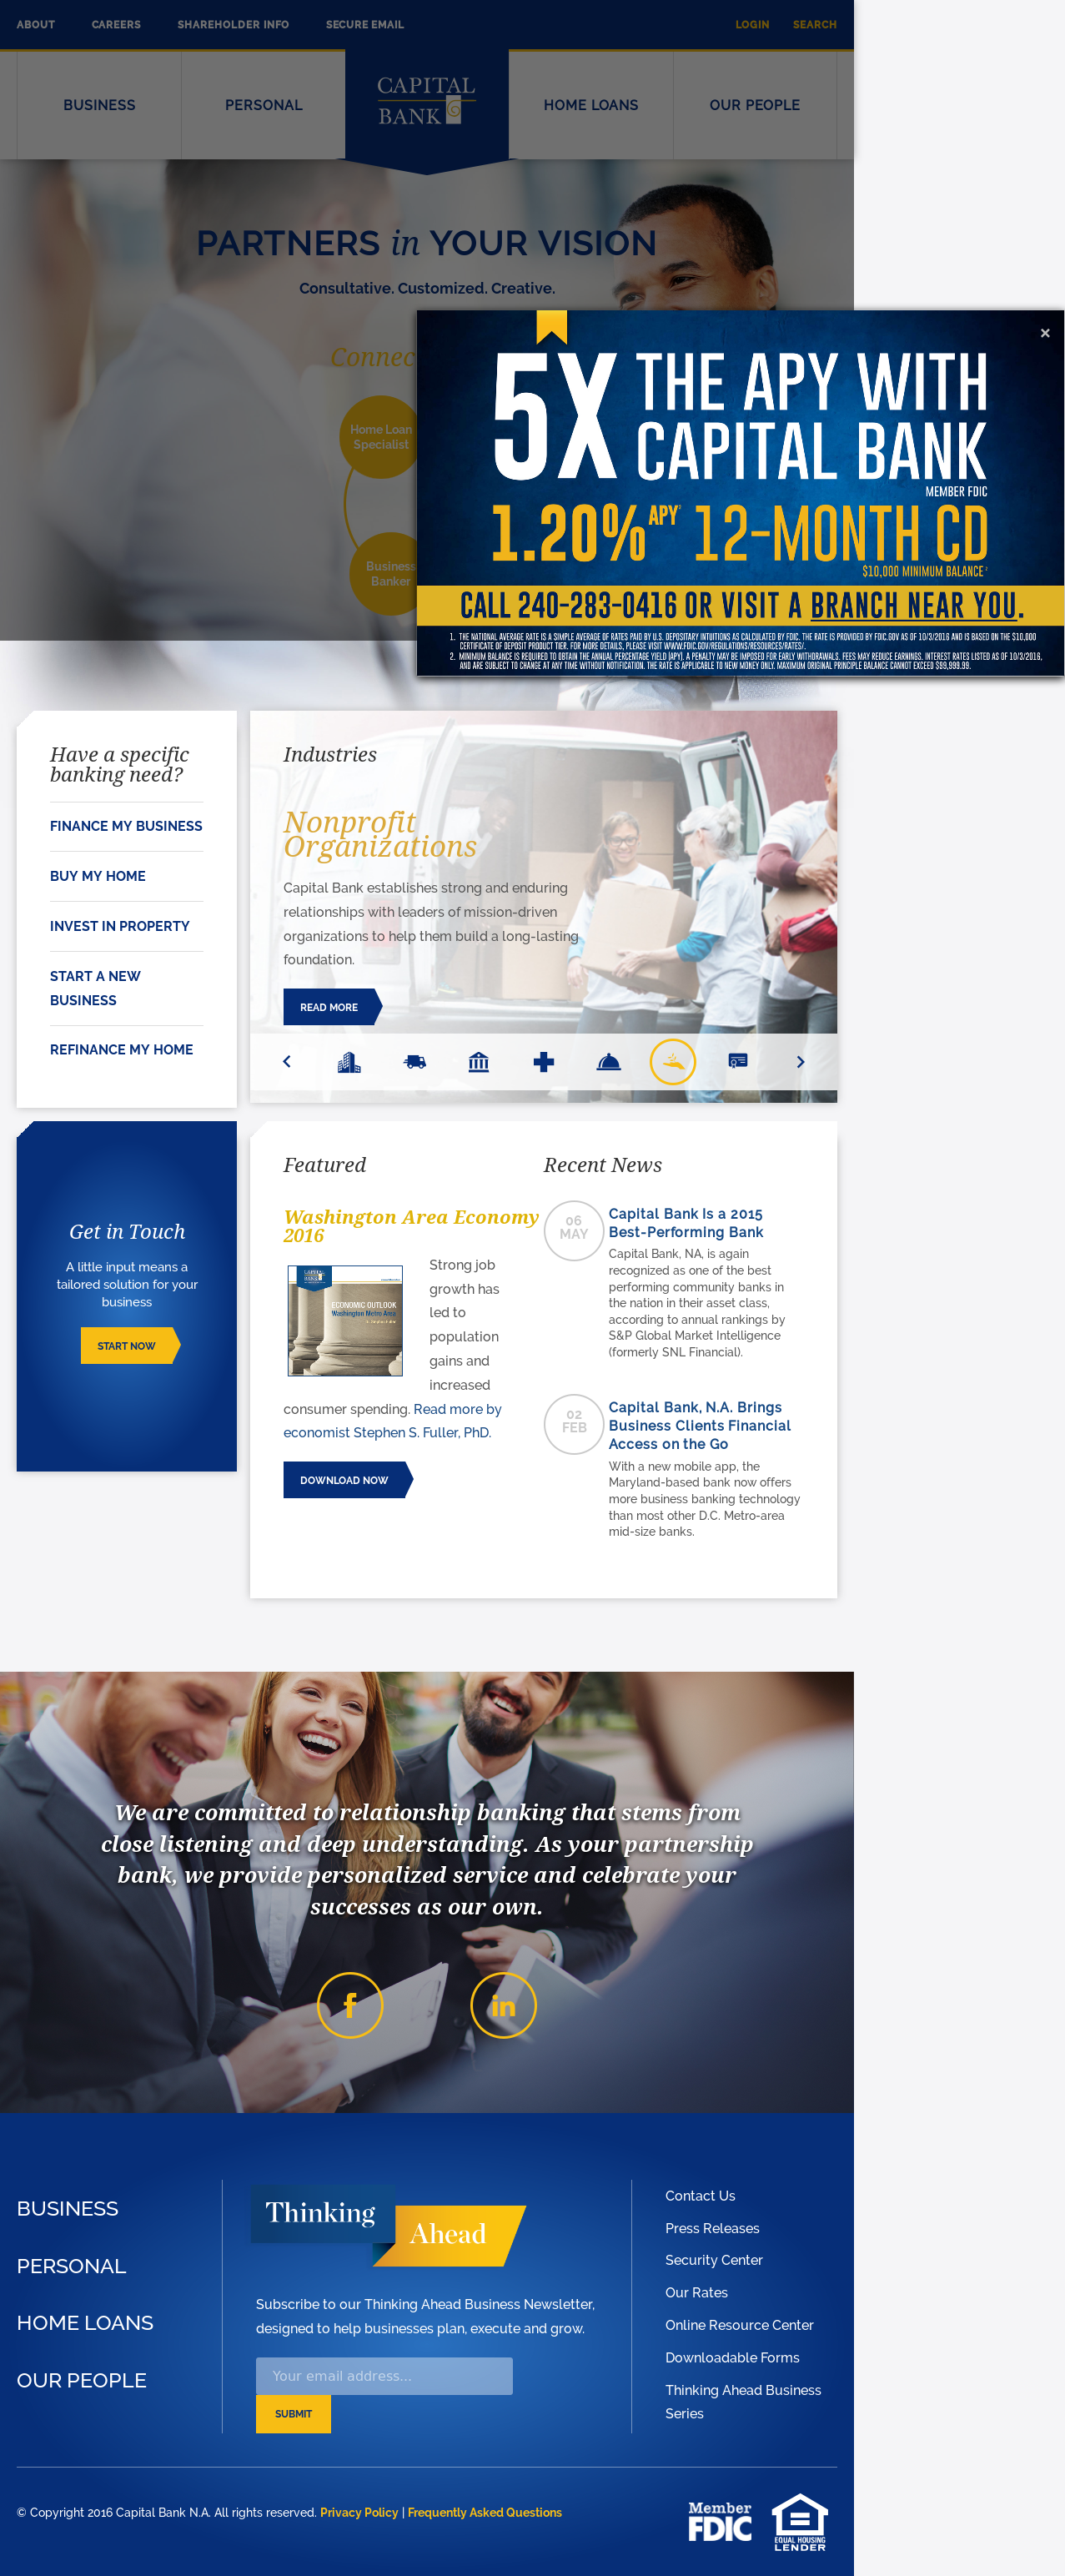 Capitalbankmd Competitors, Revenue and Employees - Owler